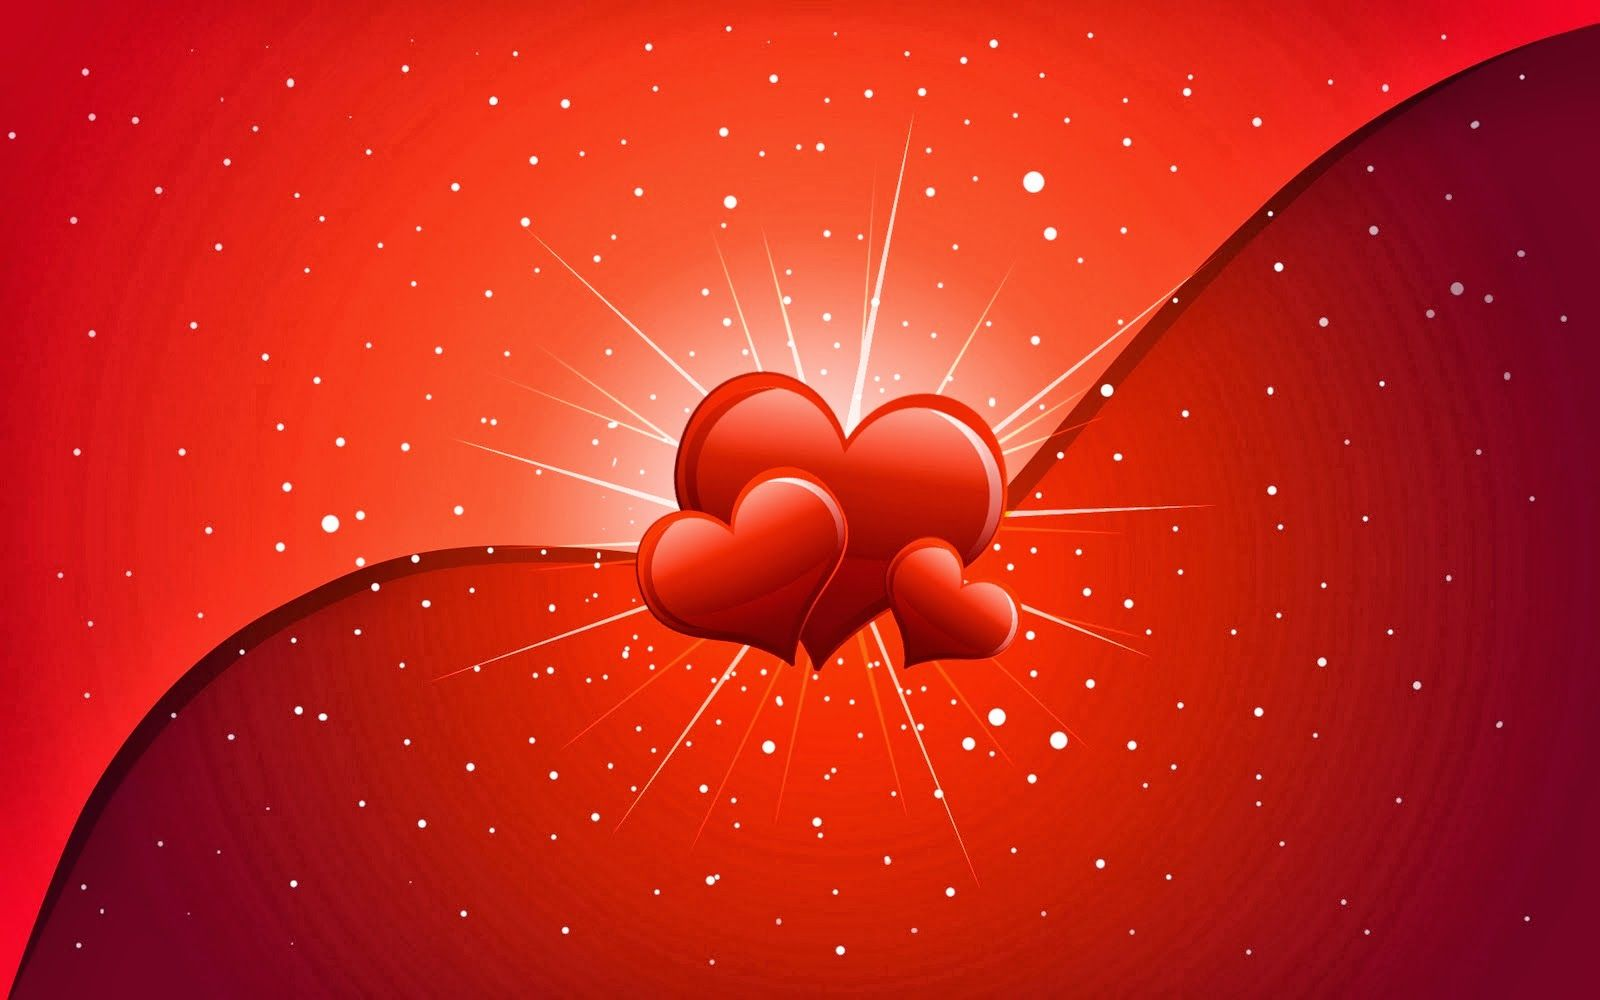 High Definition Wallpapers Hd Valentine Wallpapers Desktop 1600